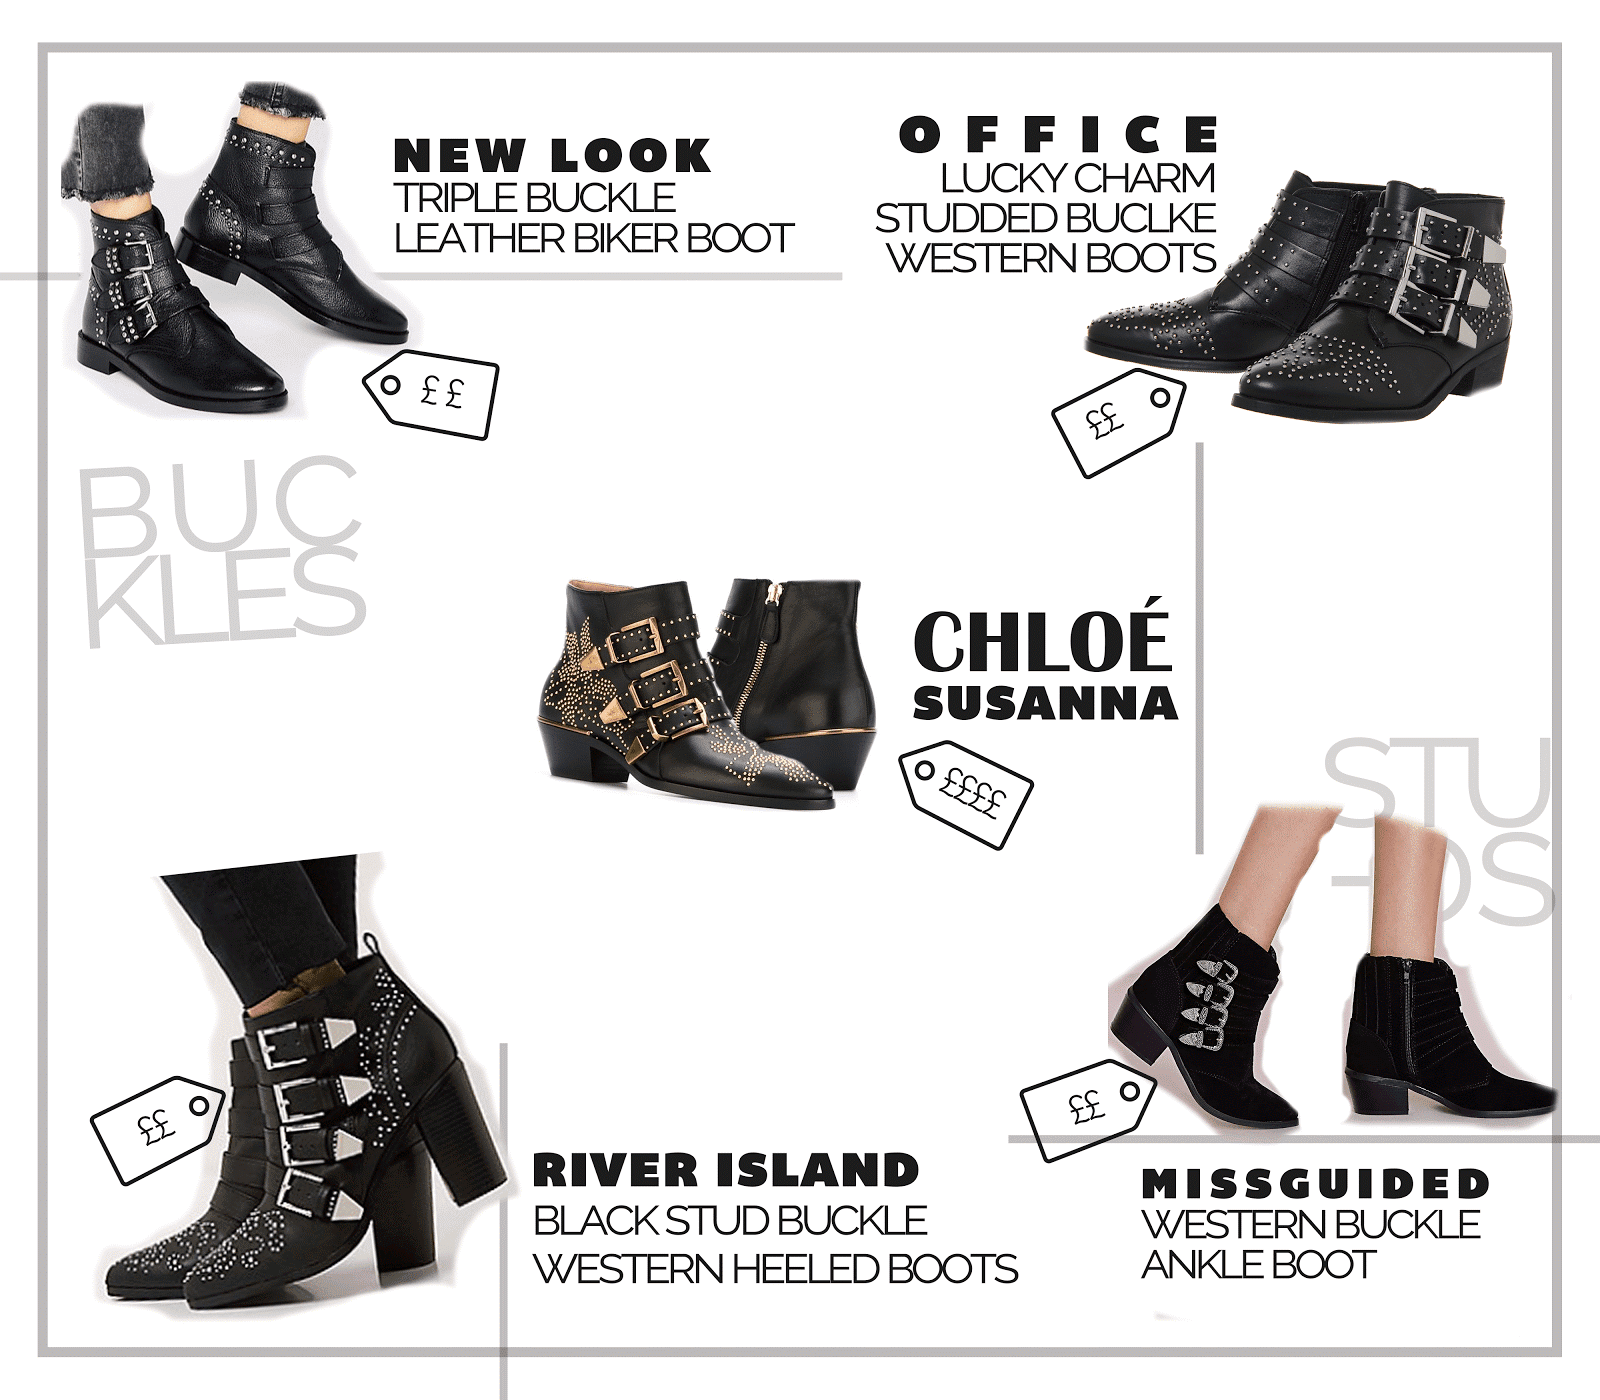 designer shoe chloe susanna western buckle boot high street best dupes